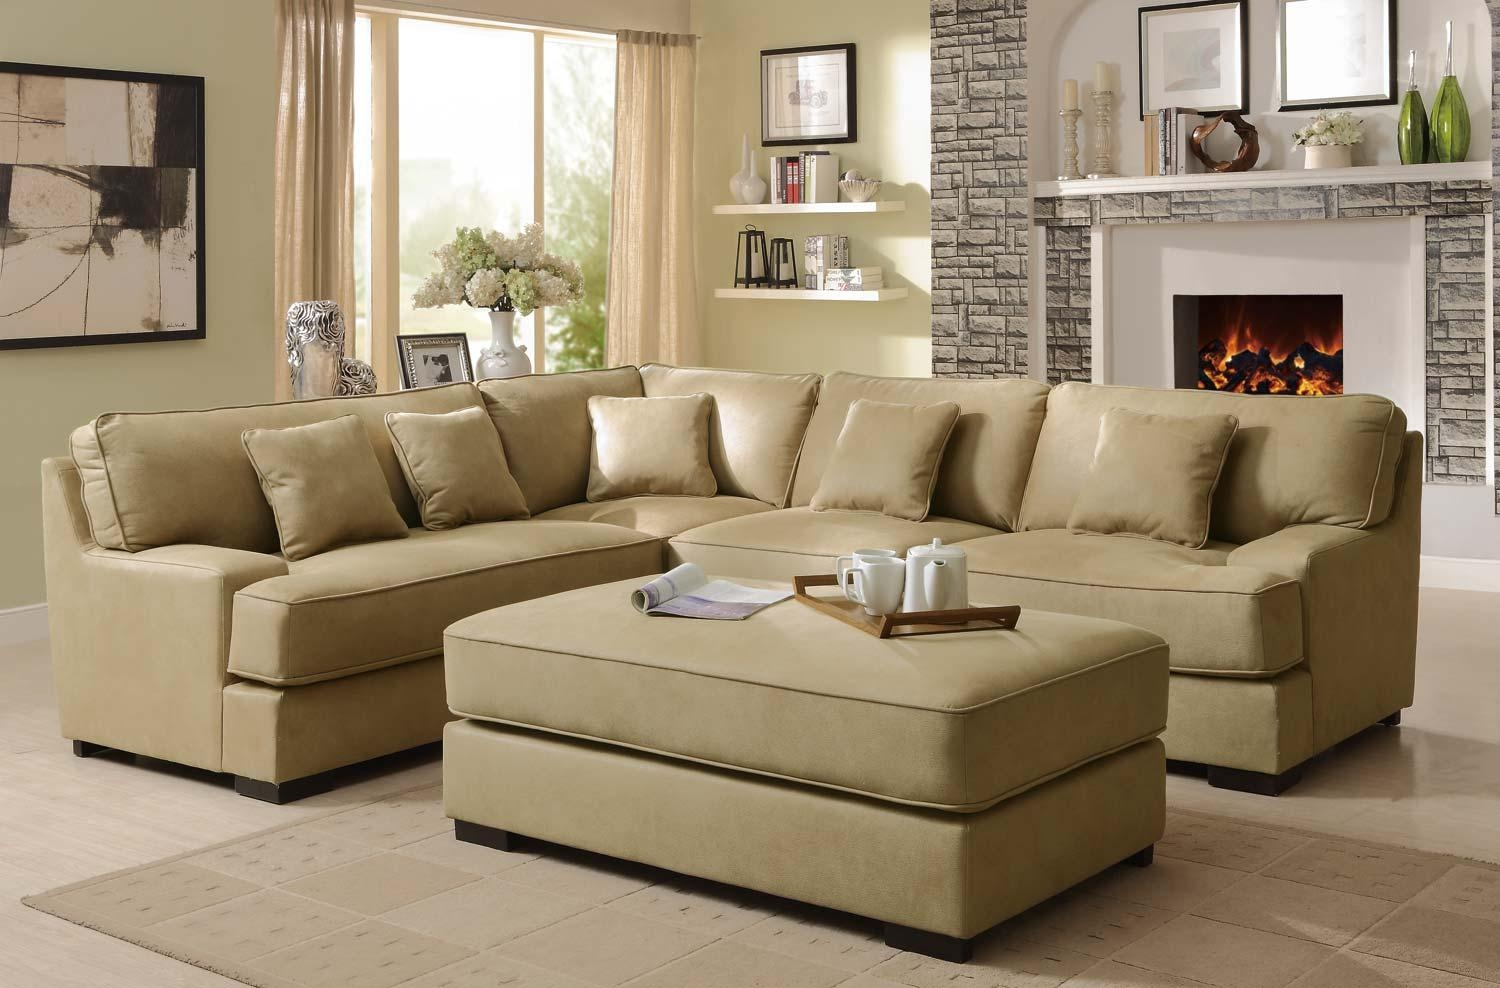 Sofas Center : Breathtaking Beige Sofa Set Picture Inspirations In Beige Sofas (Image 20 of 20)